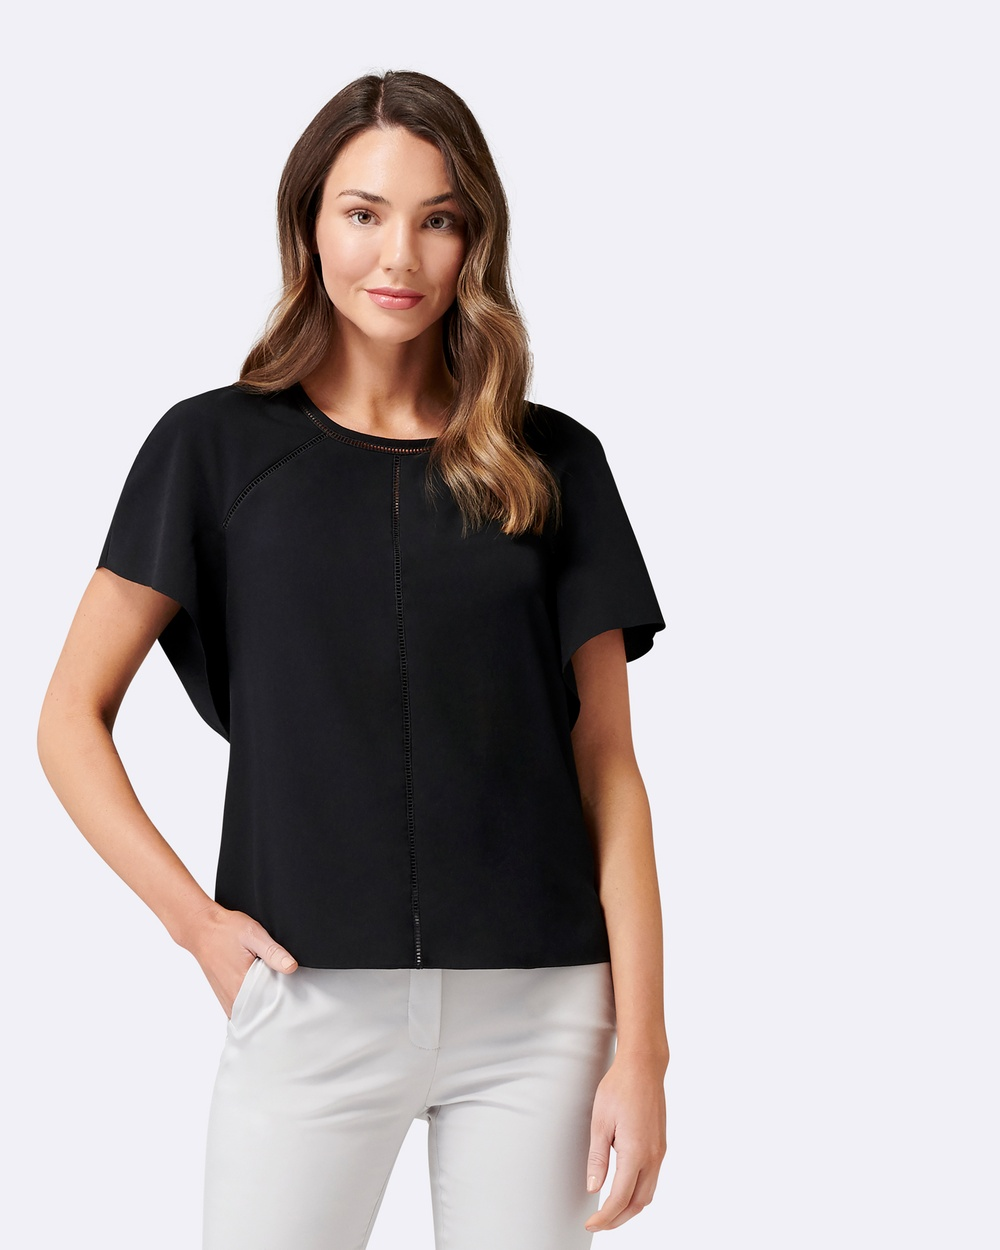 Forever New Fifi Trim Top Tops Black Fifi Trim Top